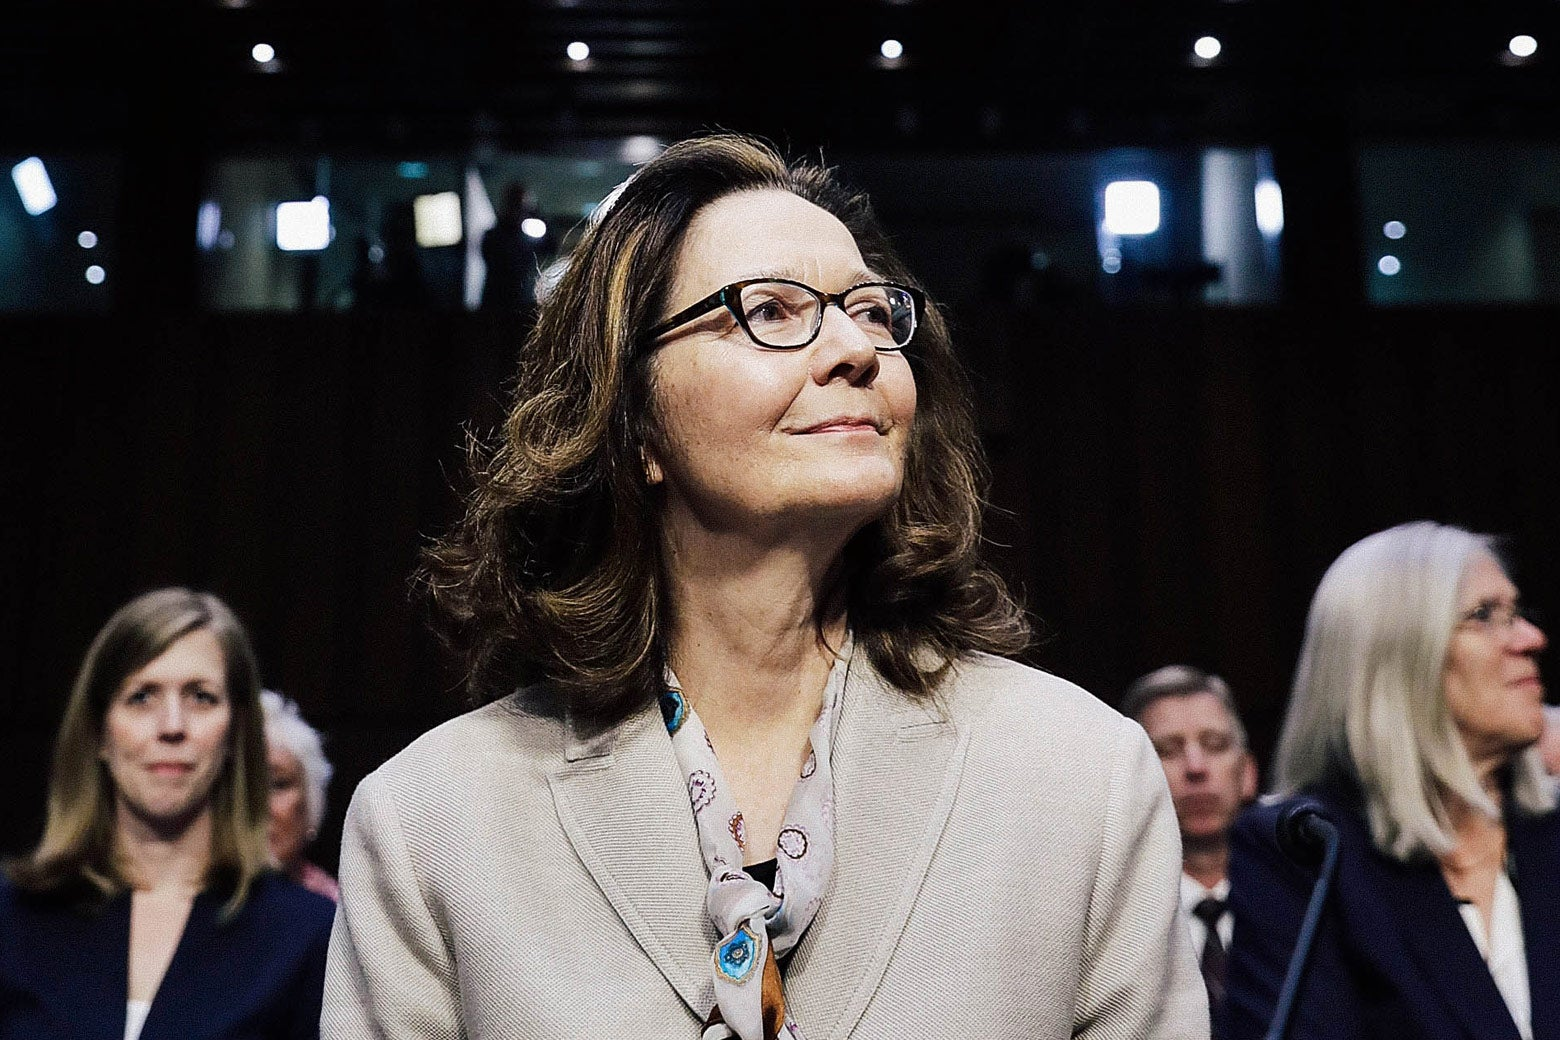 CIA acting Director Gina Haspel prepares to testify before the Senate Intelligence Committee during her confirmation hearing to become the next CIA director in the Hart Senate Office Building on Wednesday in Washington.